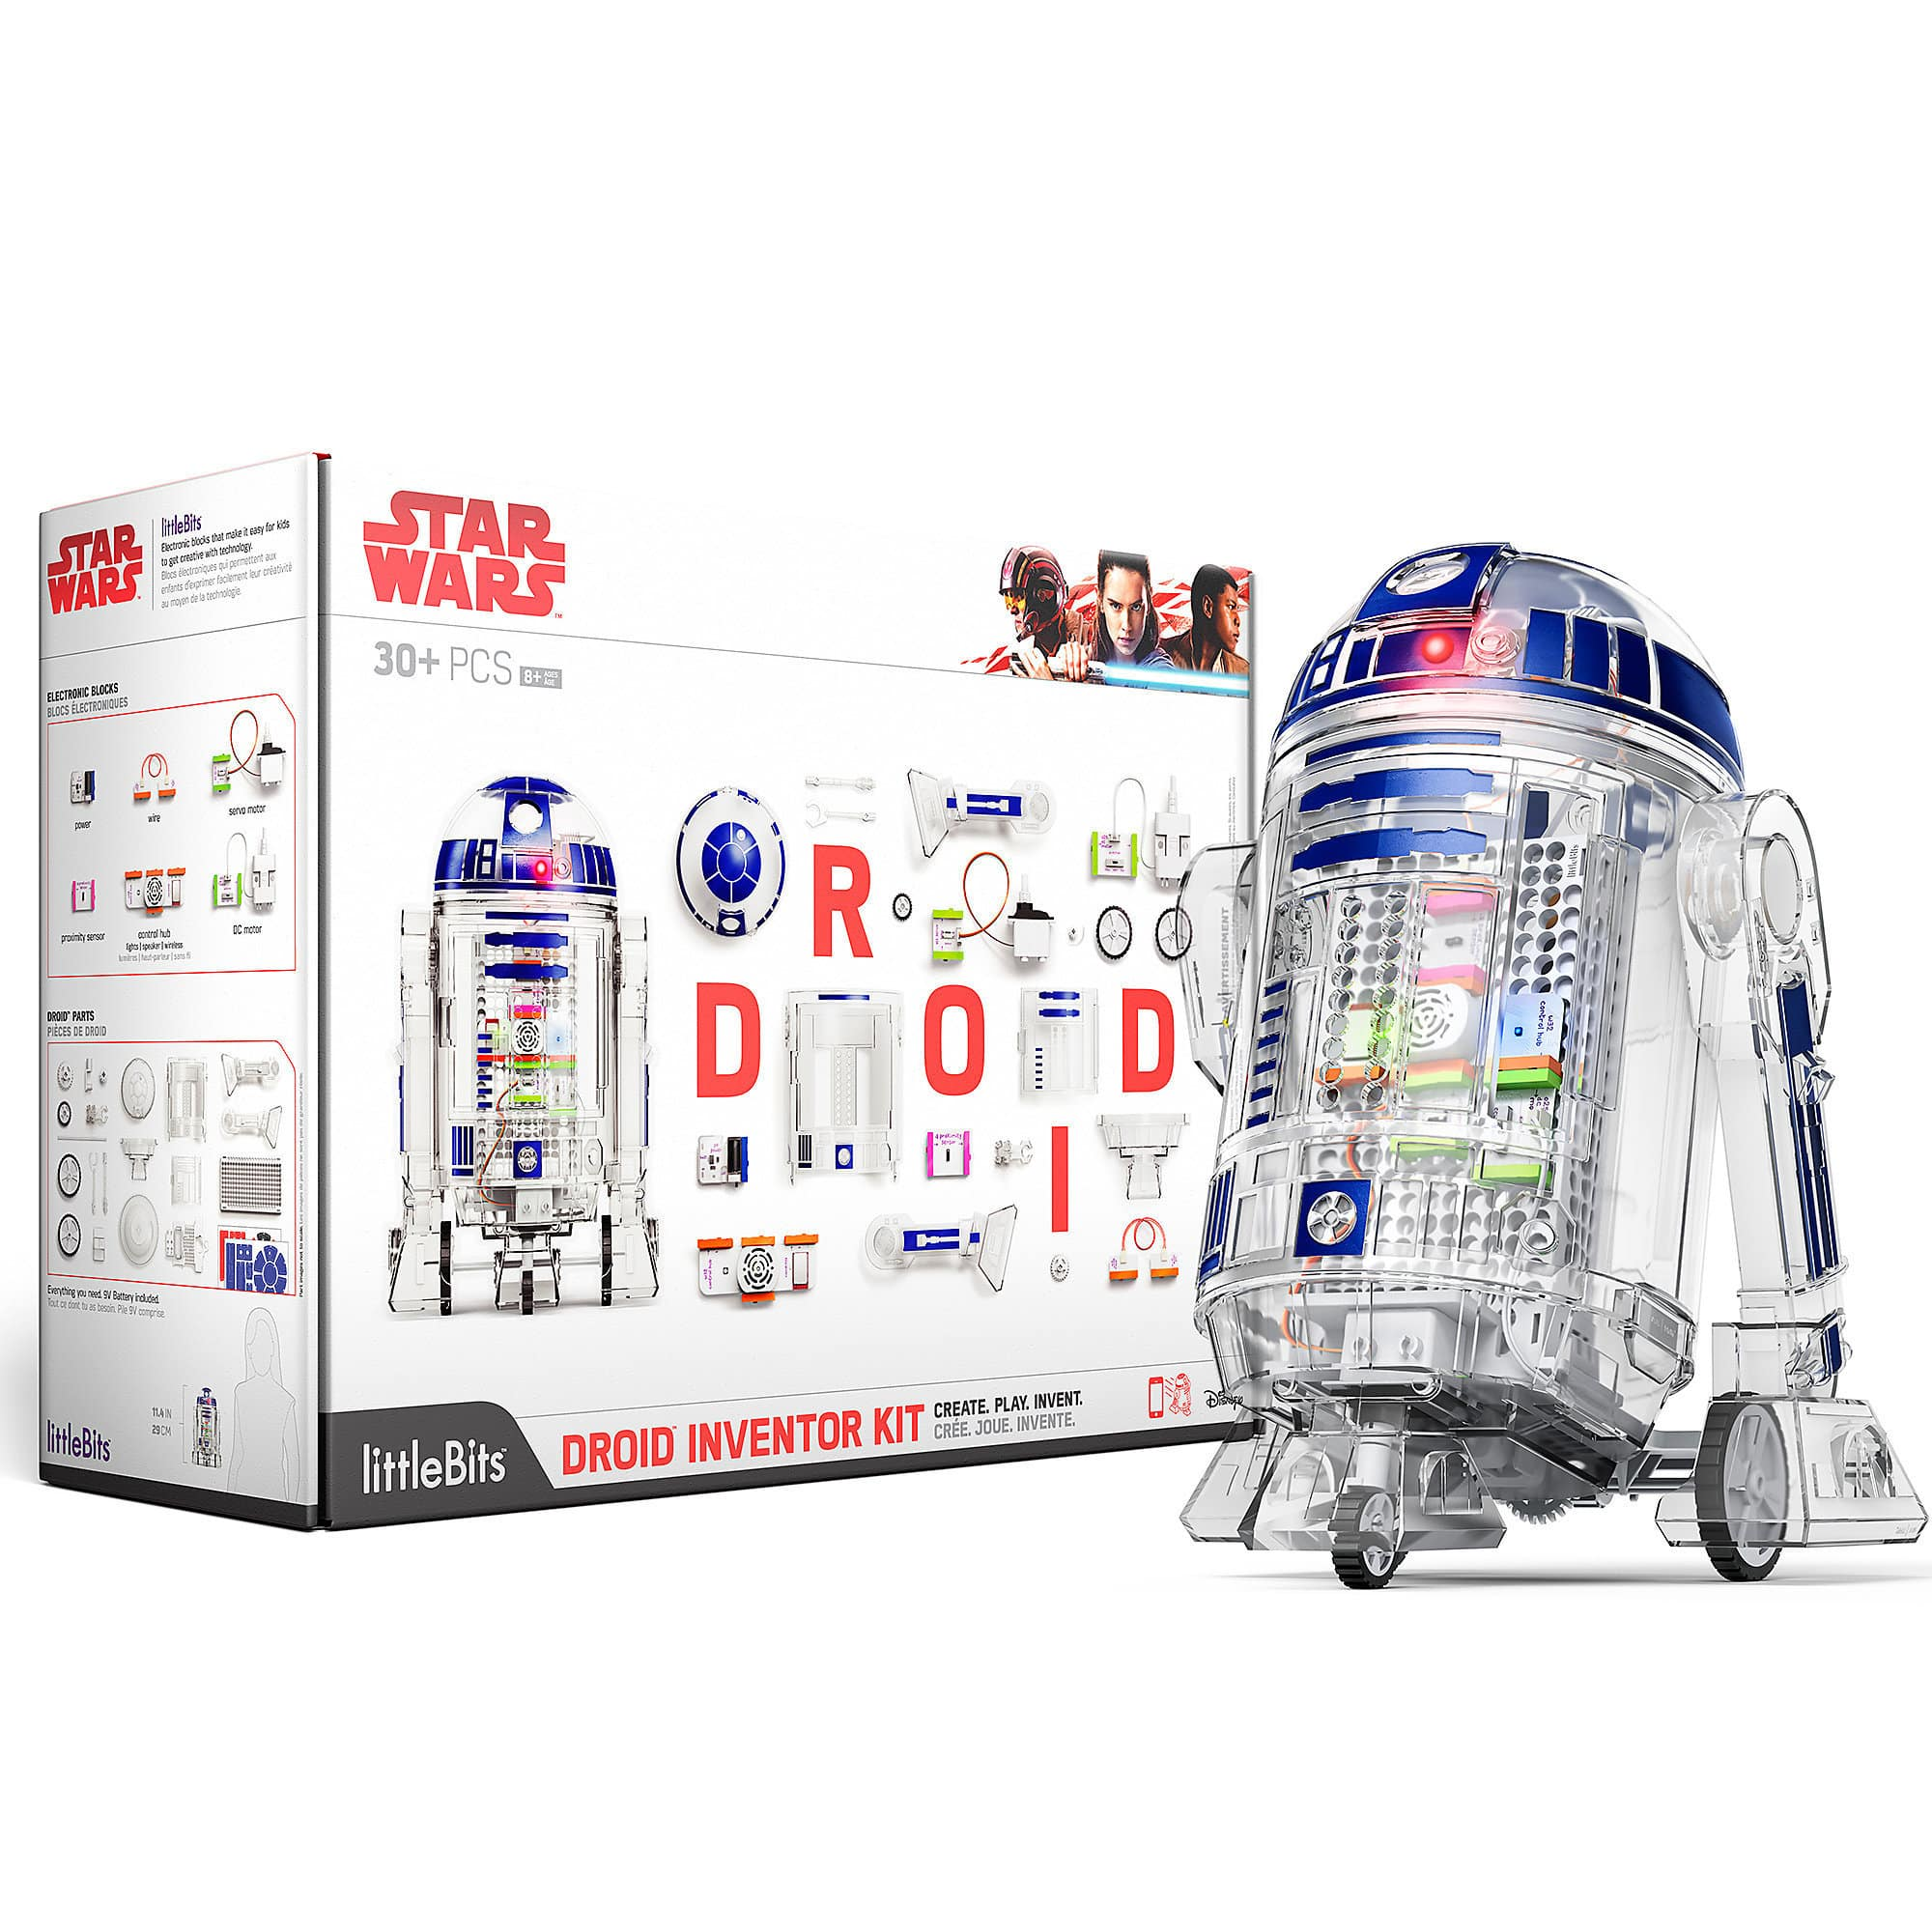 shopDisney Droid Inventor Kit by littleBits $80